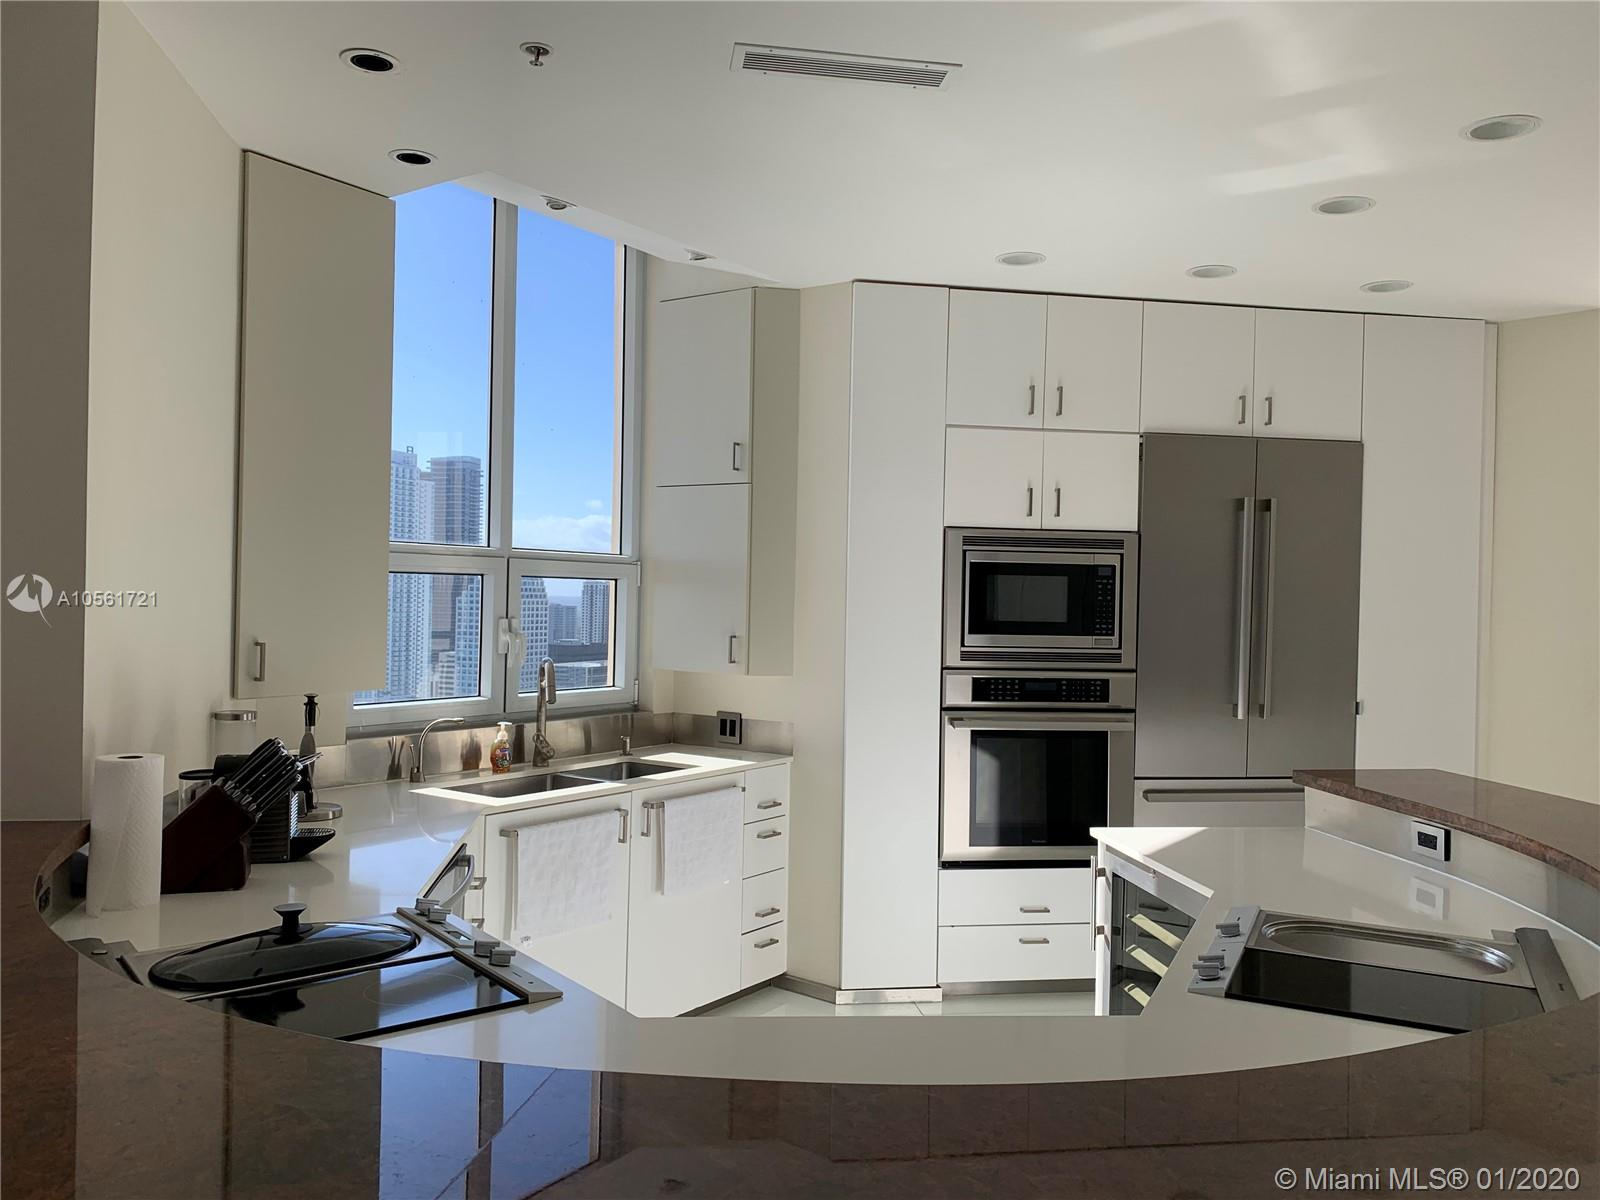 808  Brickell Key Dr #3508 For Sale A10561721, FL